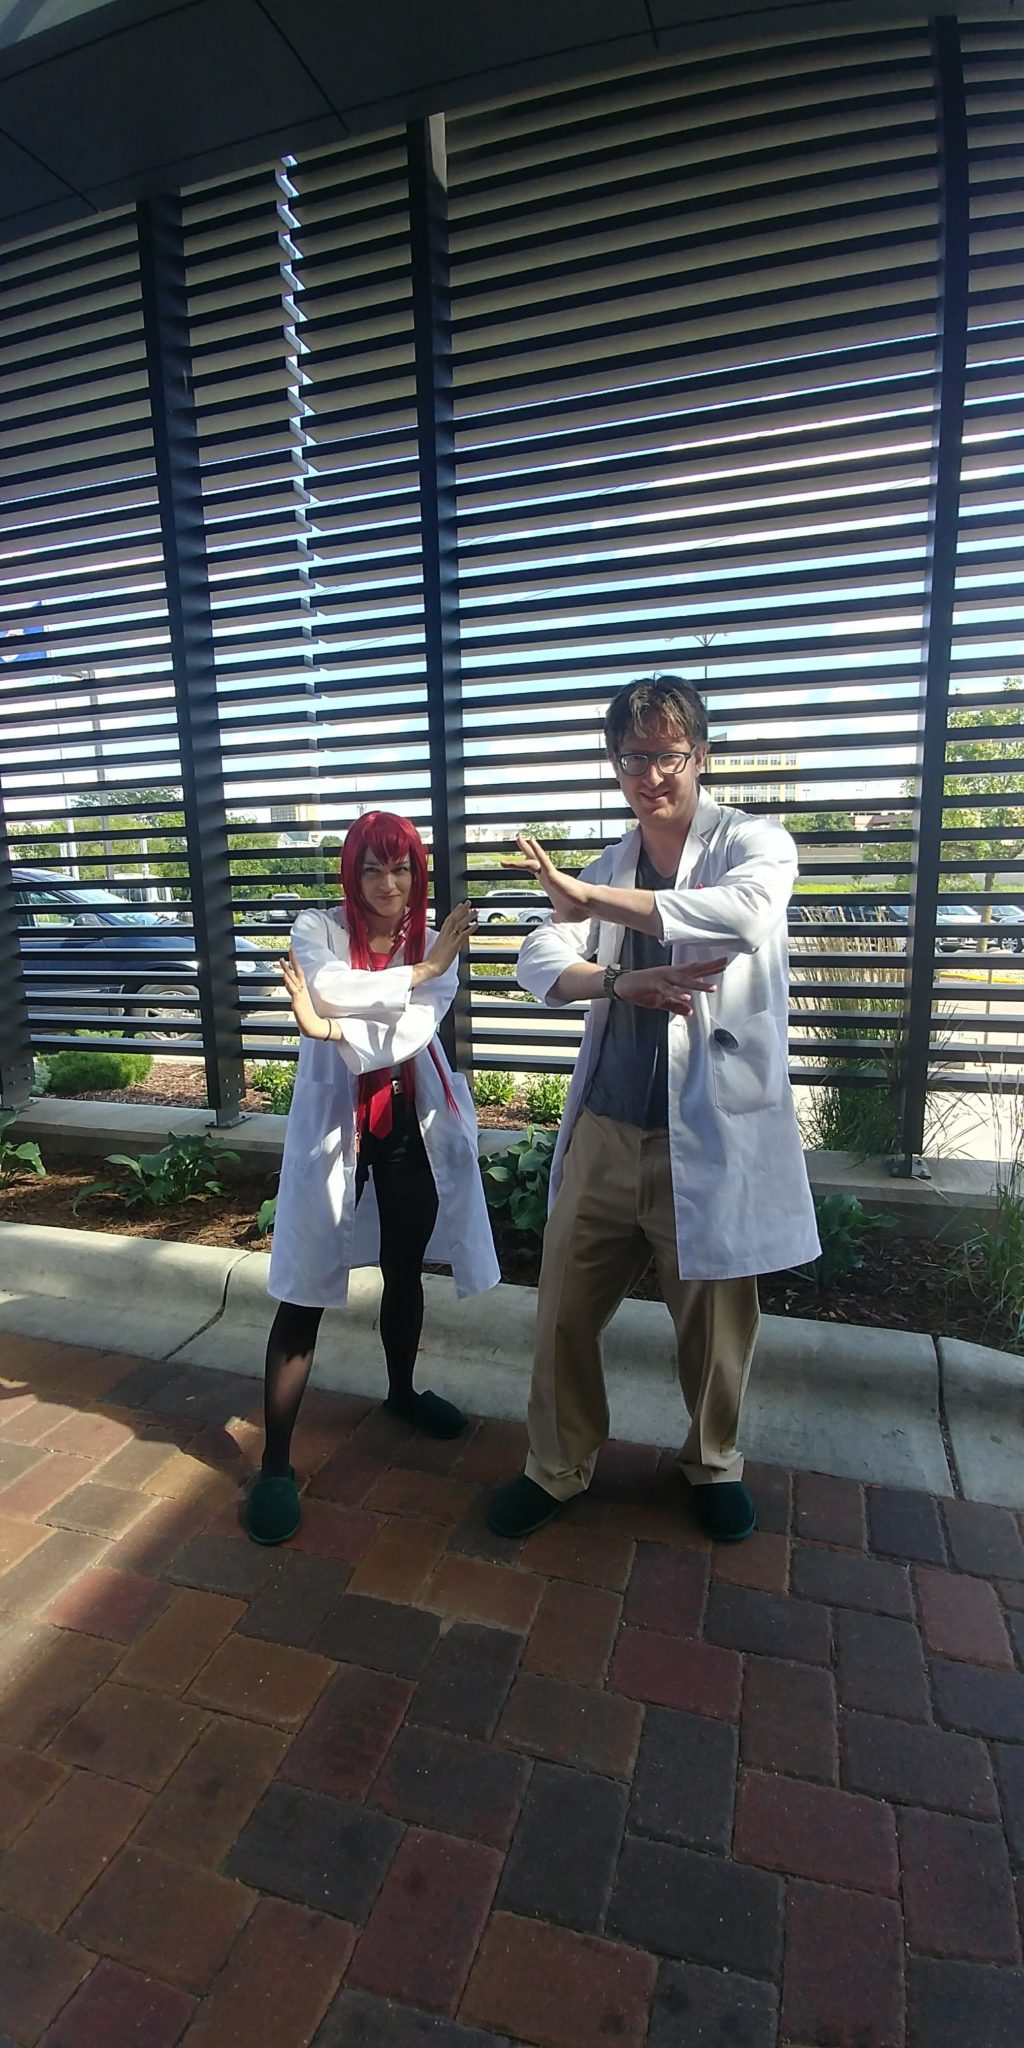 A woman and man dressed as the characters Kurusu and Okabe from Steins;Gate do the classic arms-crossed-in-front-of-chest pose from the show